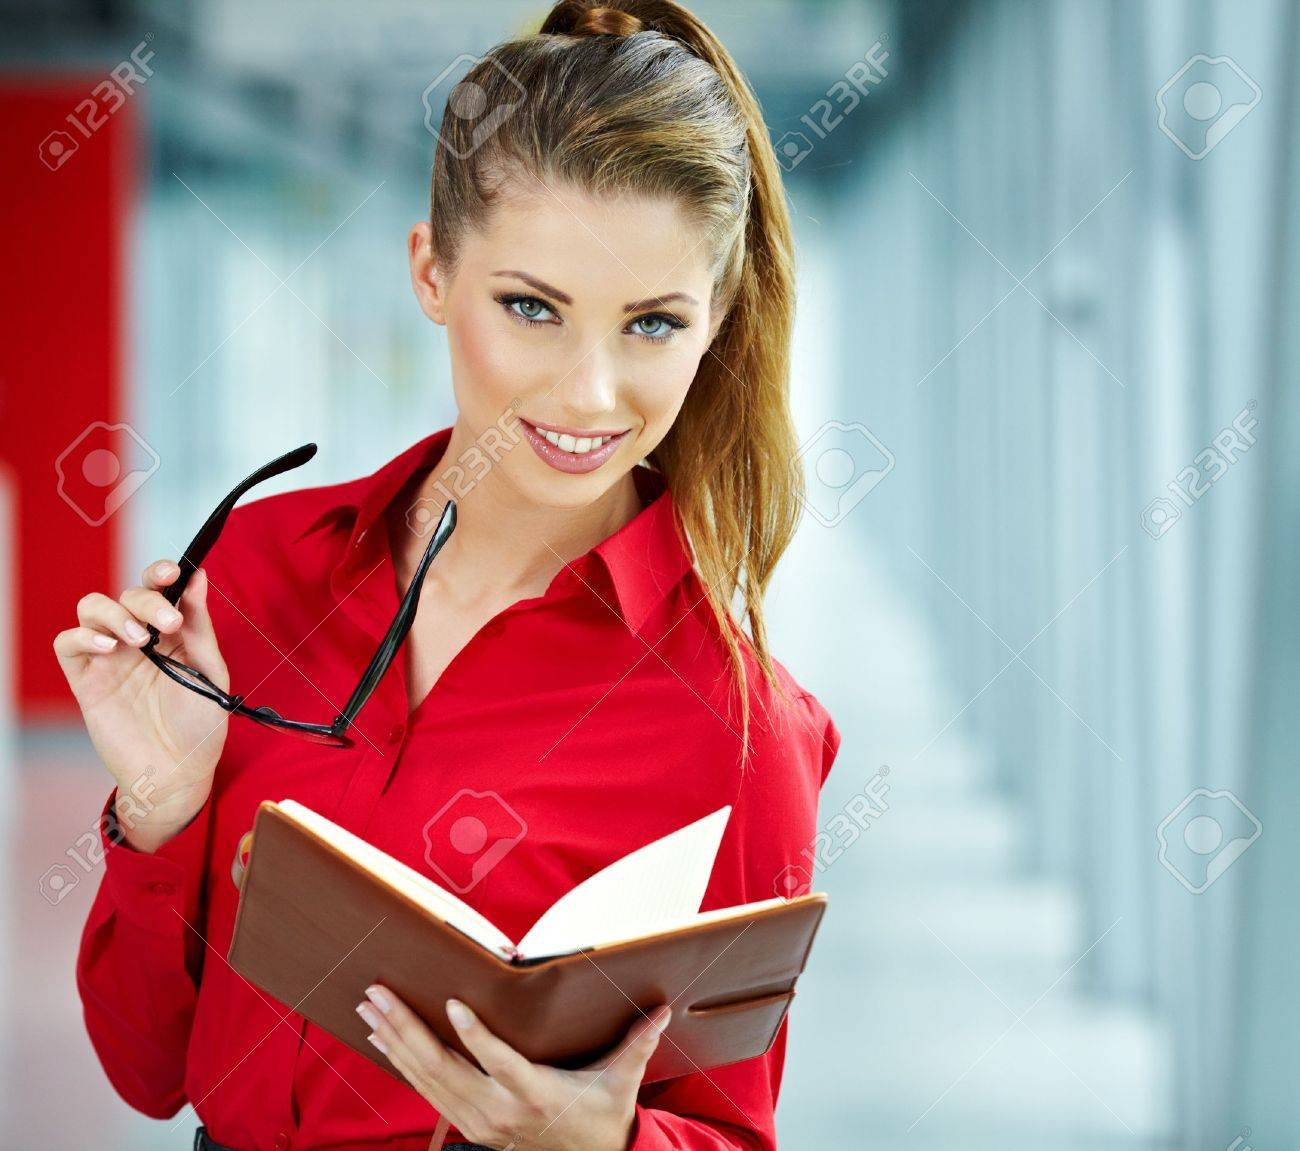 Modern business woman in the office with copy space Stock Photo - 15256440